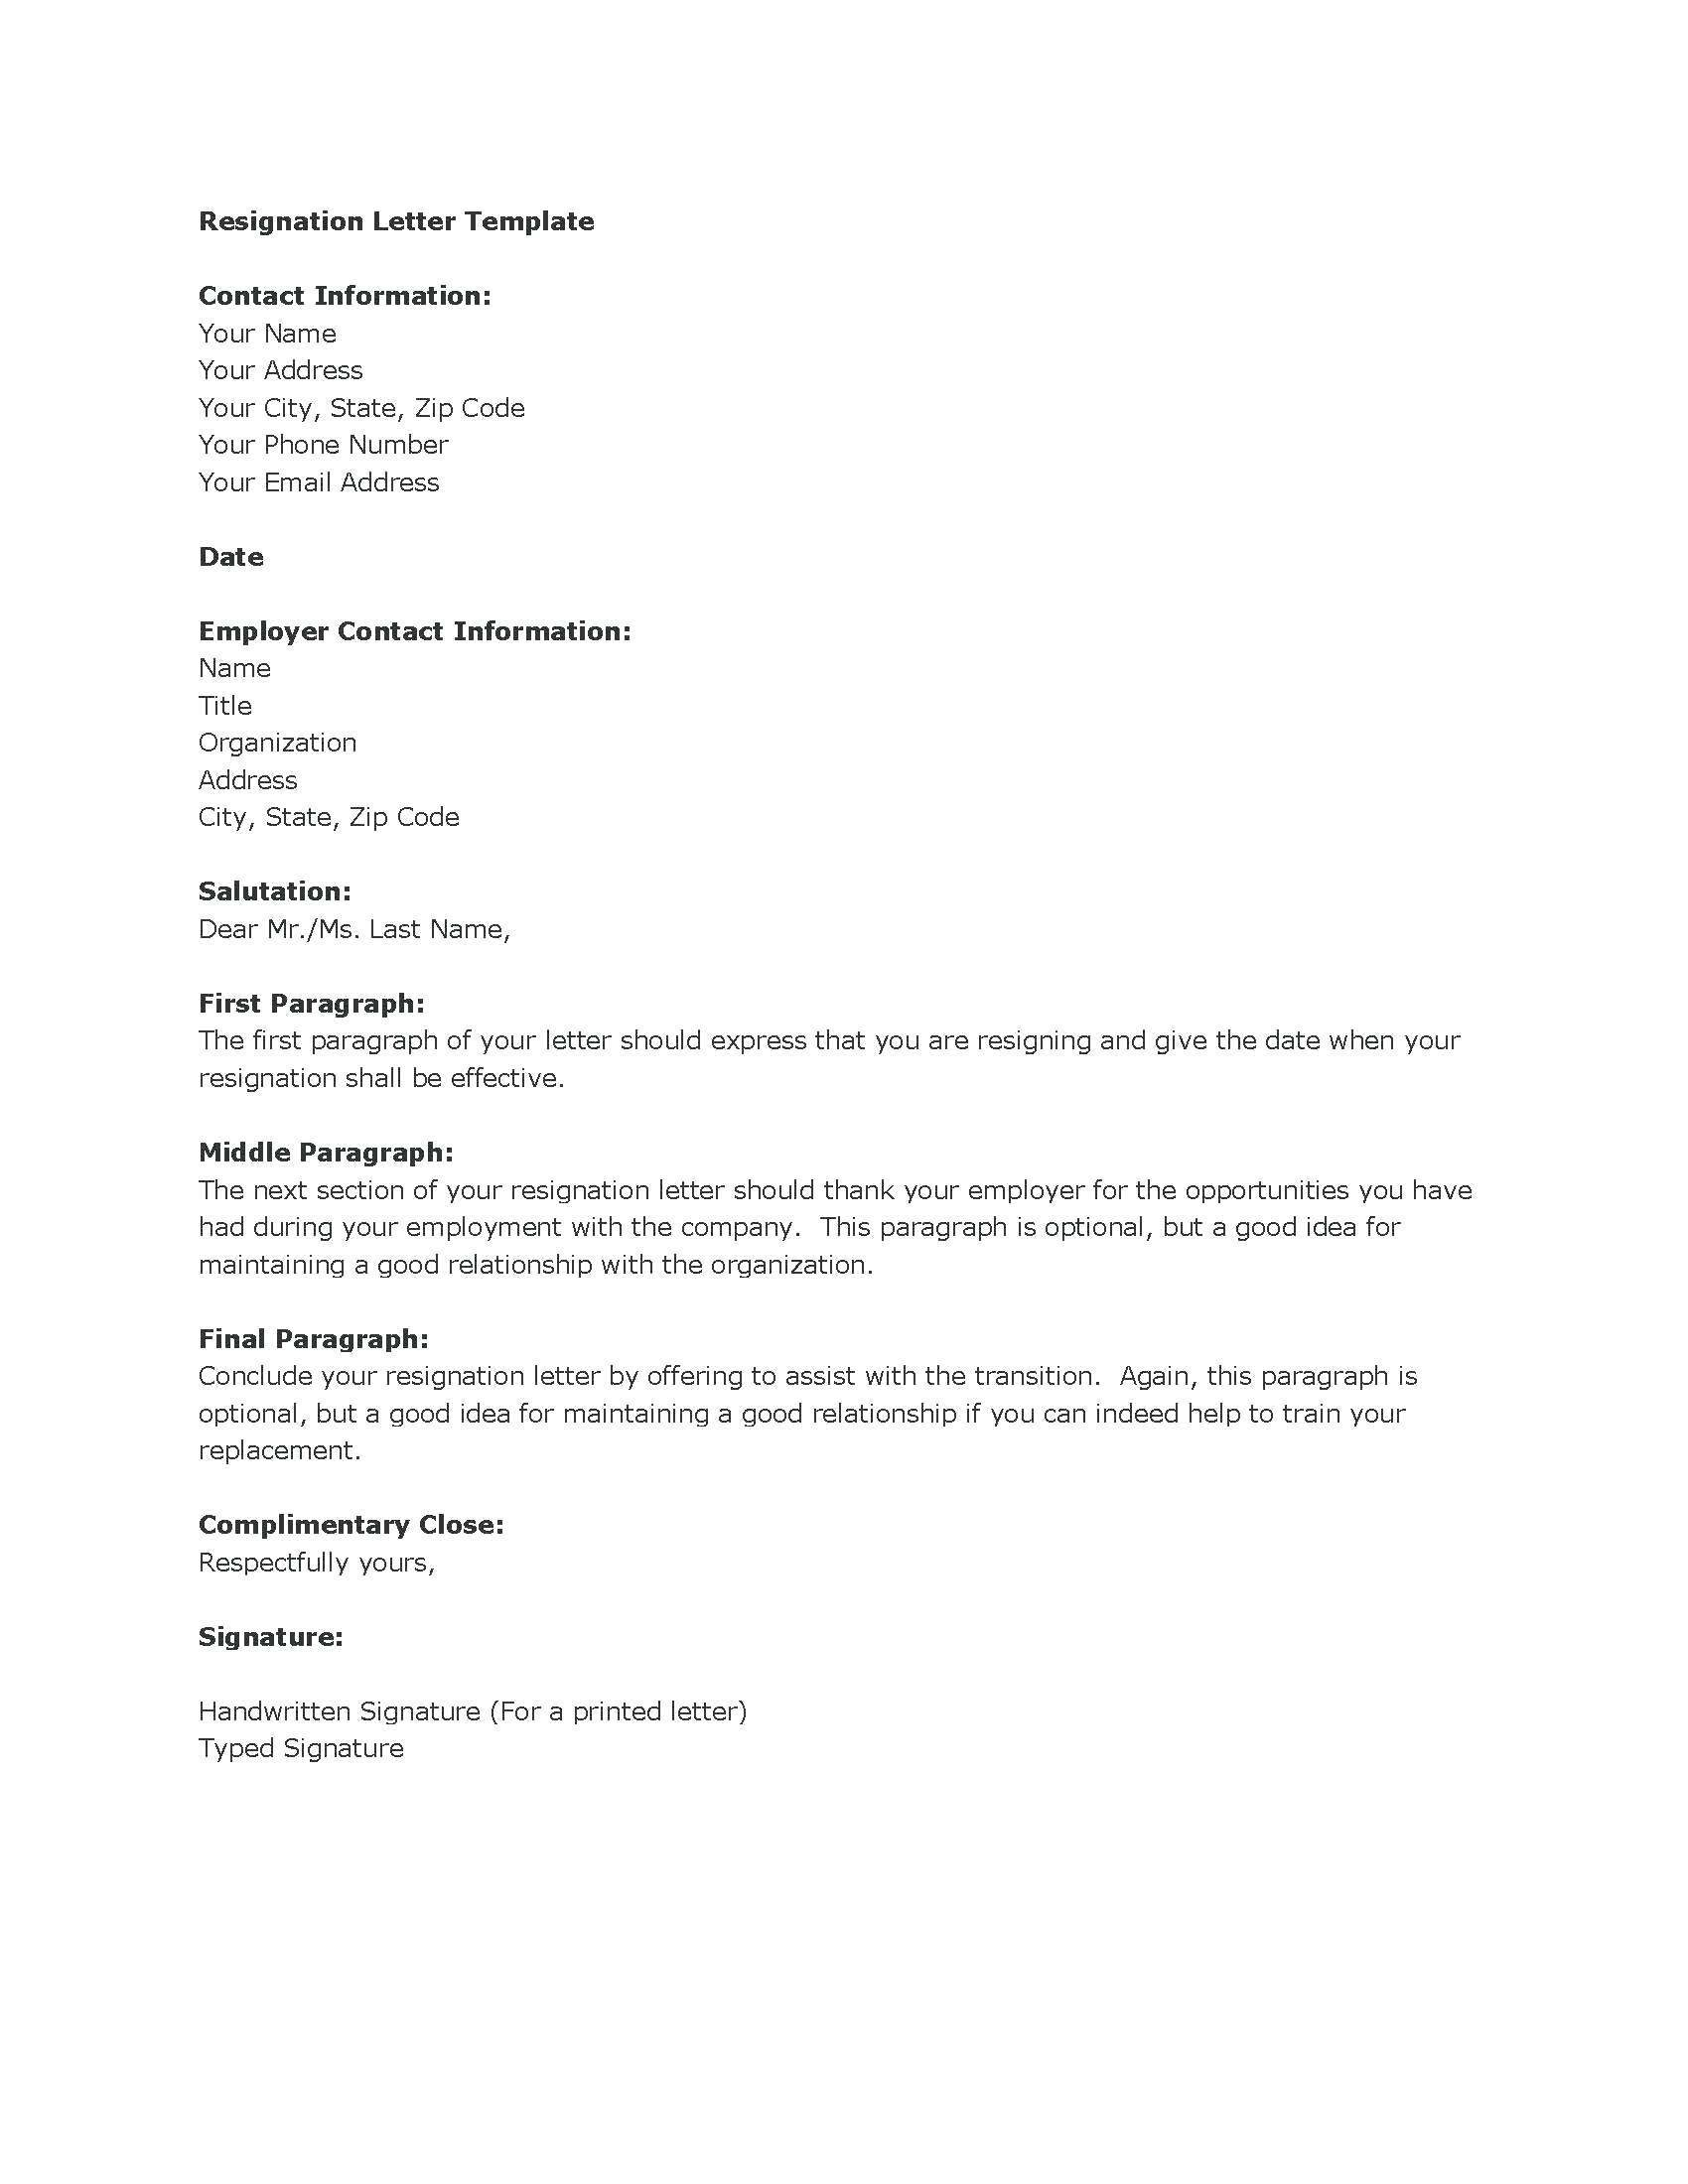 Microsoft Office Resignation Letter Template - Resignation Letter In Ms Word Sarahepps